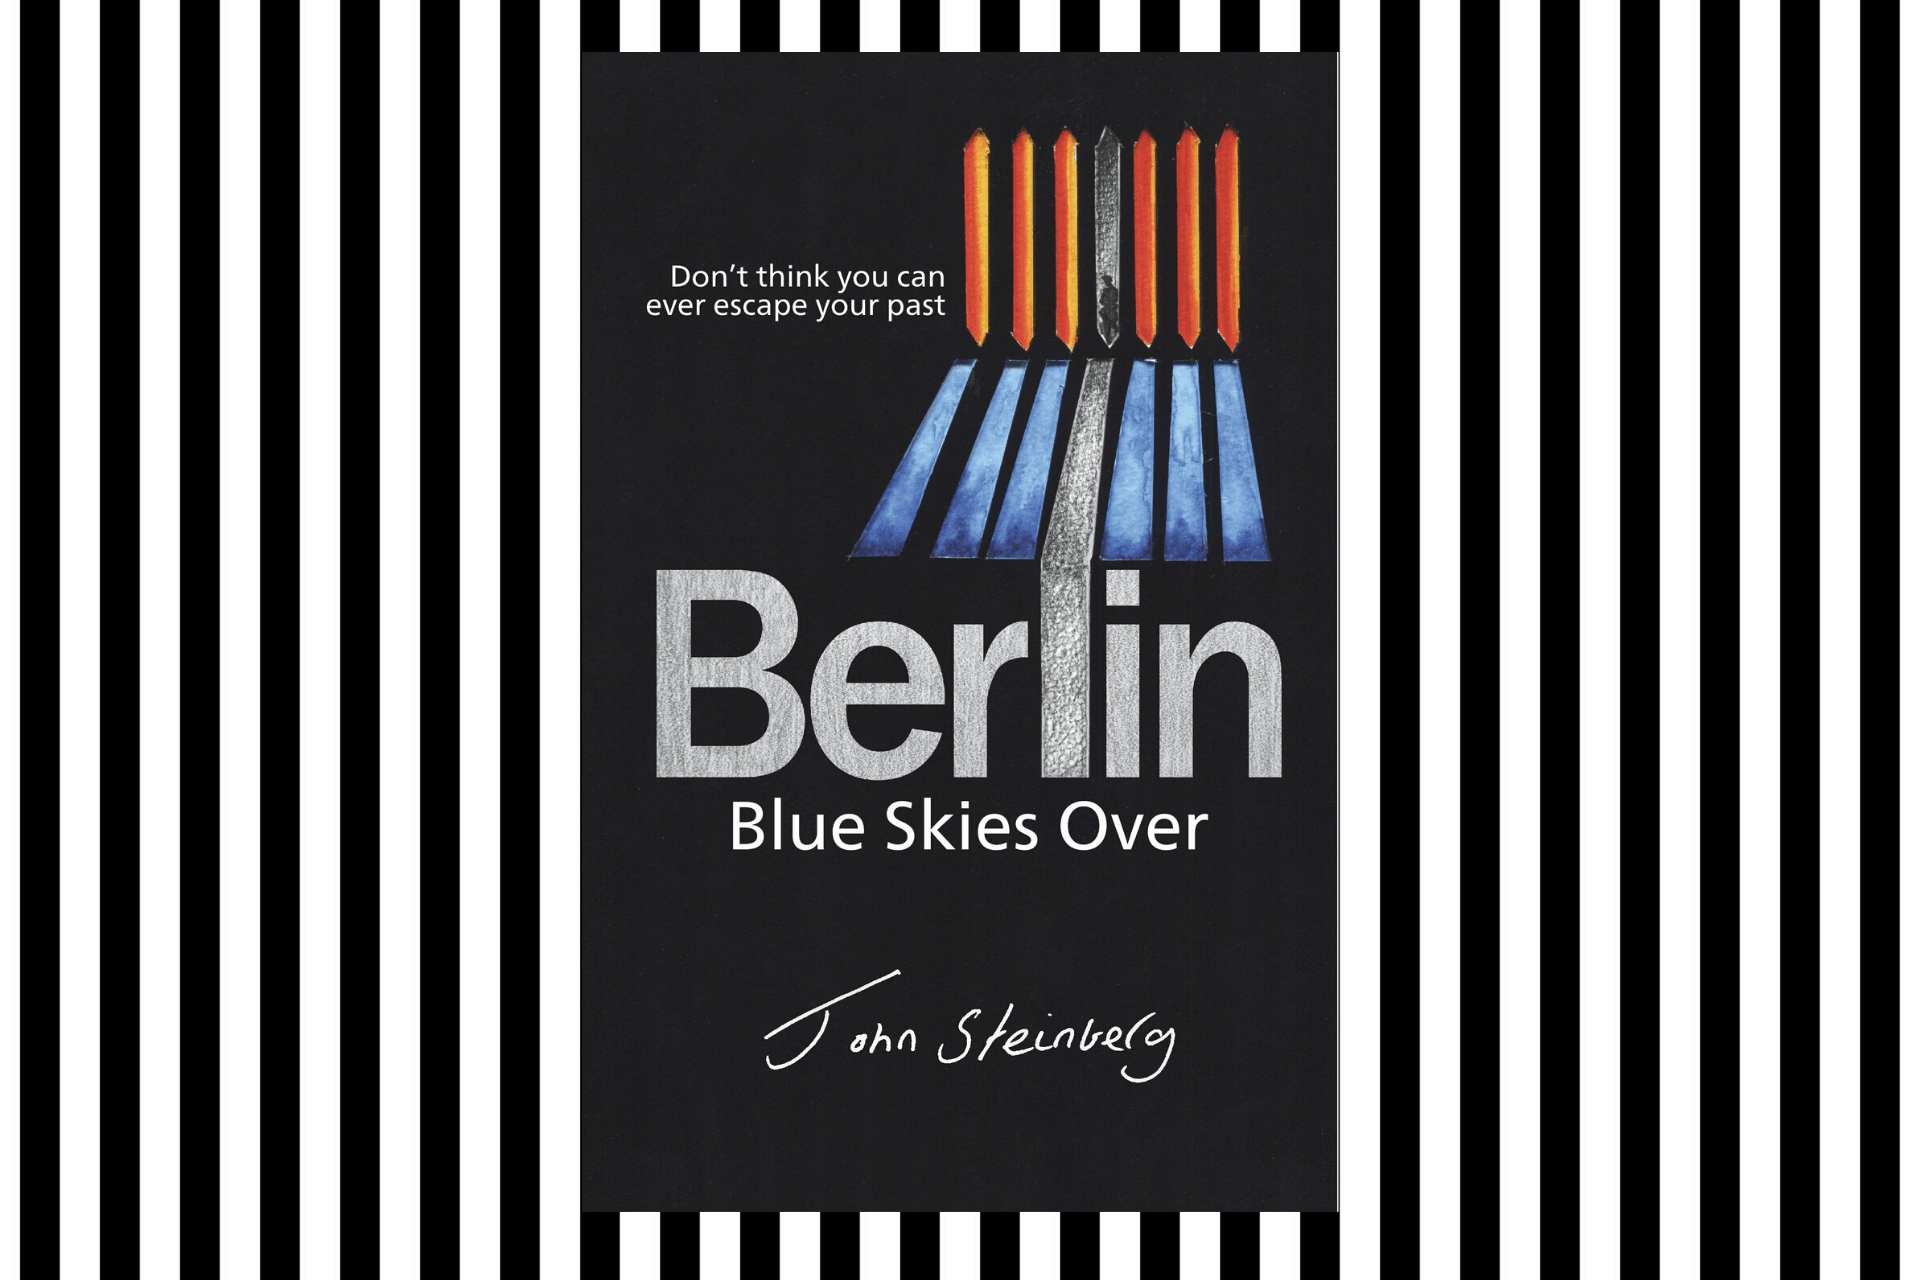 Blue Skies Over Berlin by John Steinberg